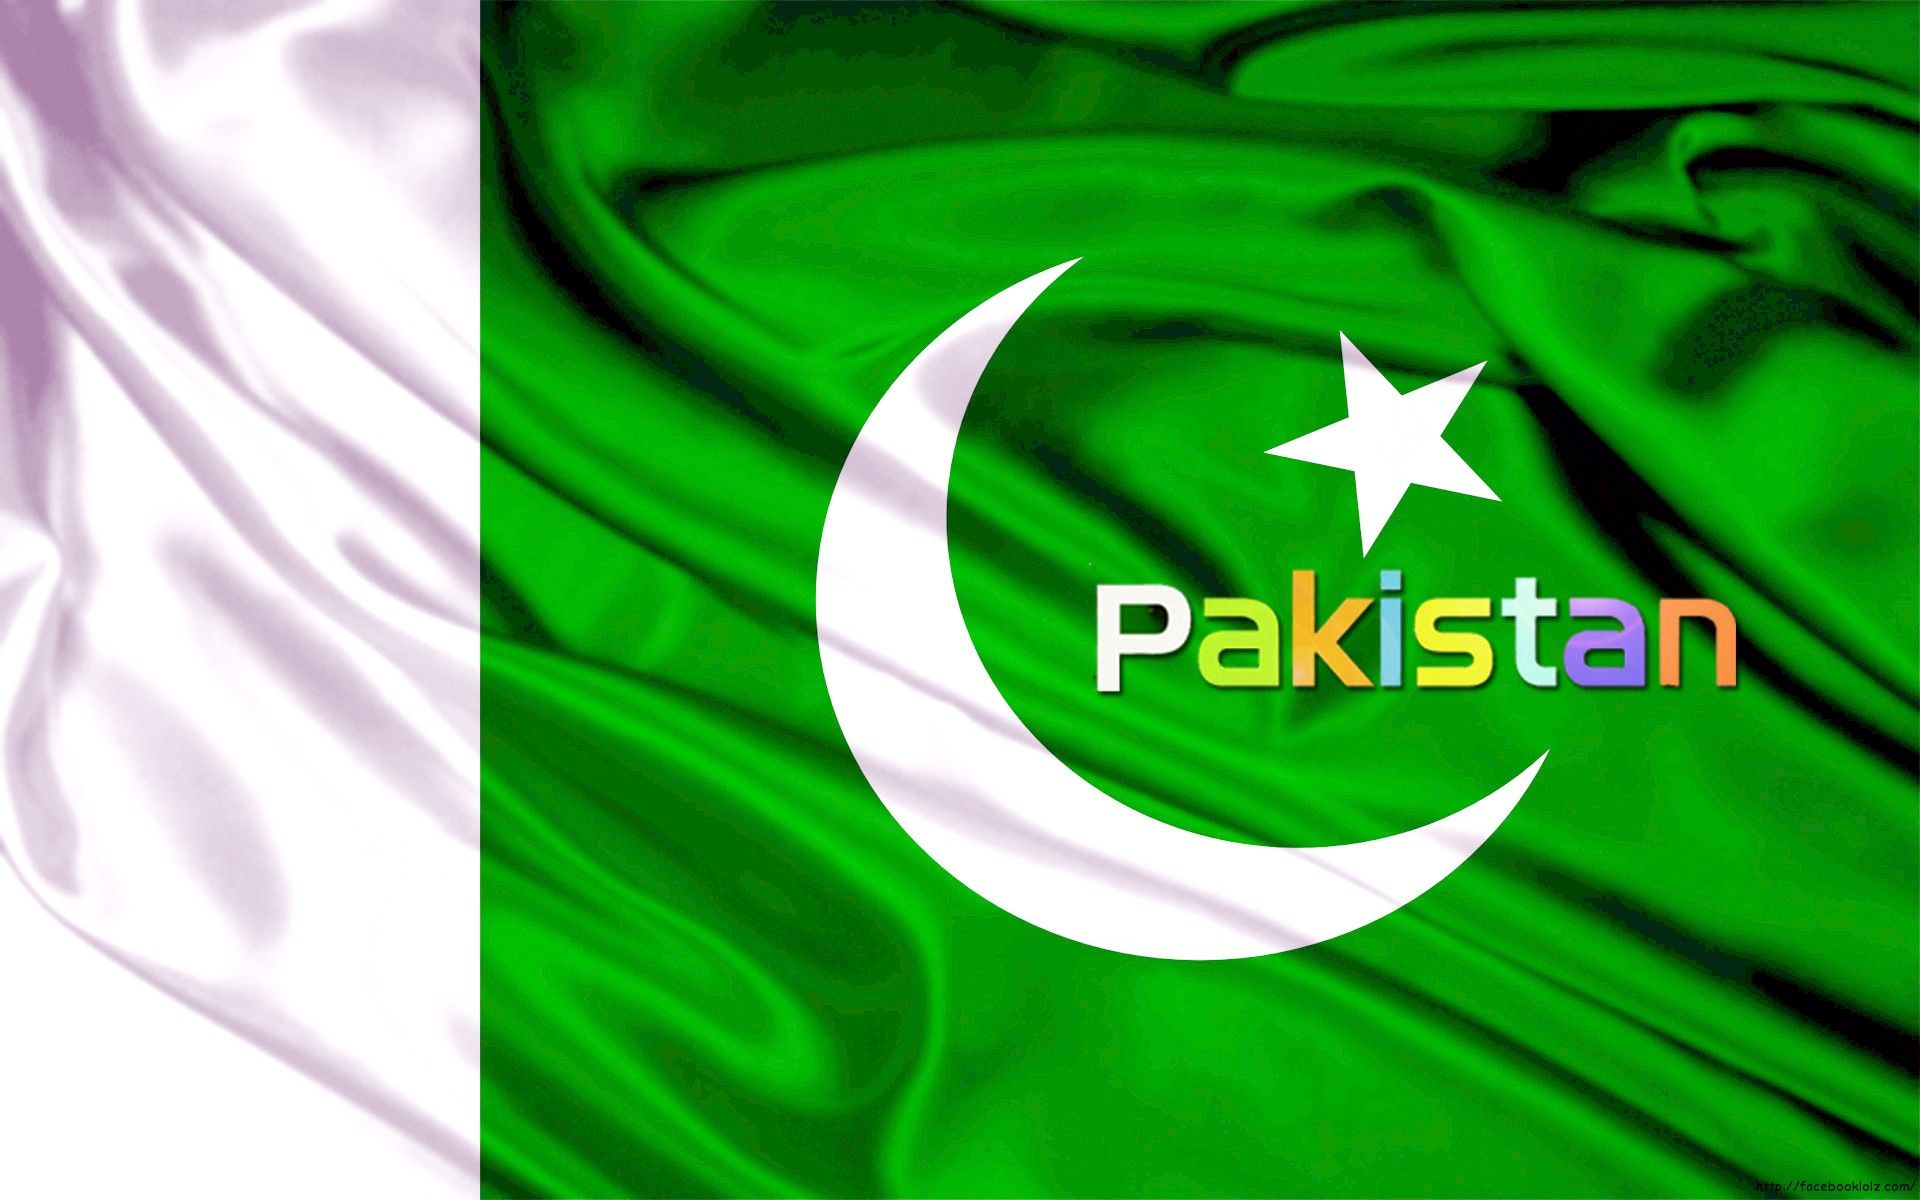 Pakistan Flag Hd Wallpapers Http Facebooklolz Com Pakistan Flag Hd Wallpapers Pakistan Flag Pakistan Flag Photo Pakistan Flag Hd